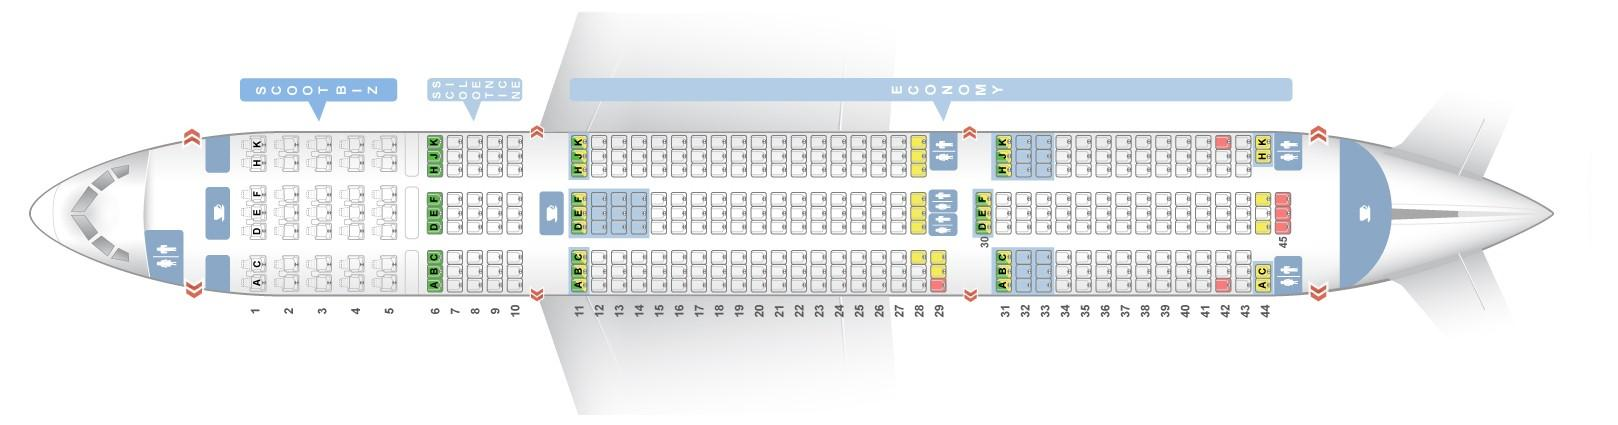 """Seat map Boeing 787-9 """"Scoot Airlines"""". Best seats in the plane"""